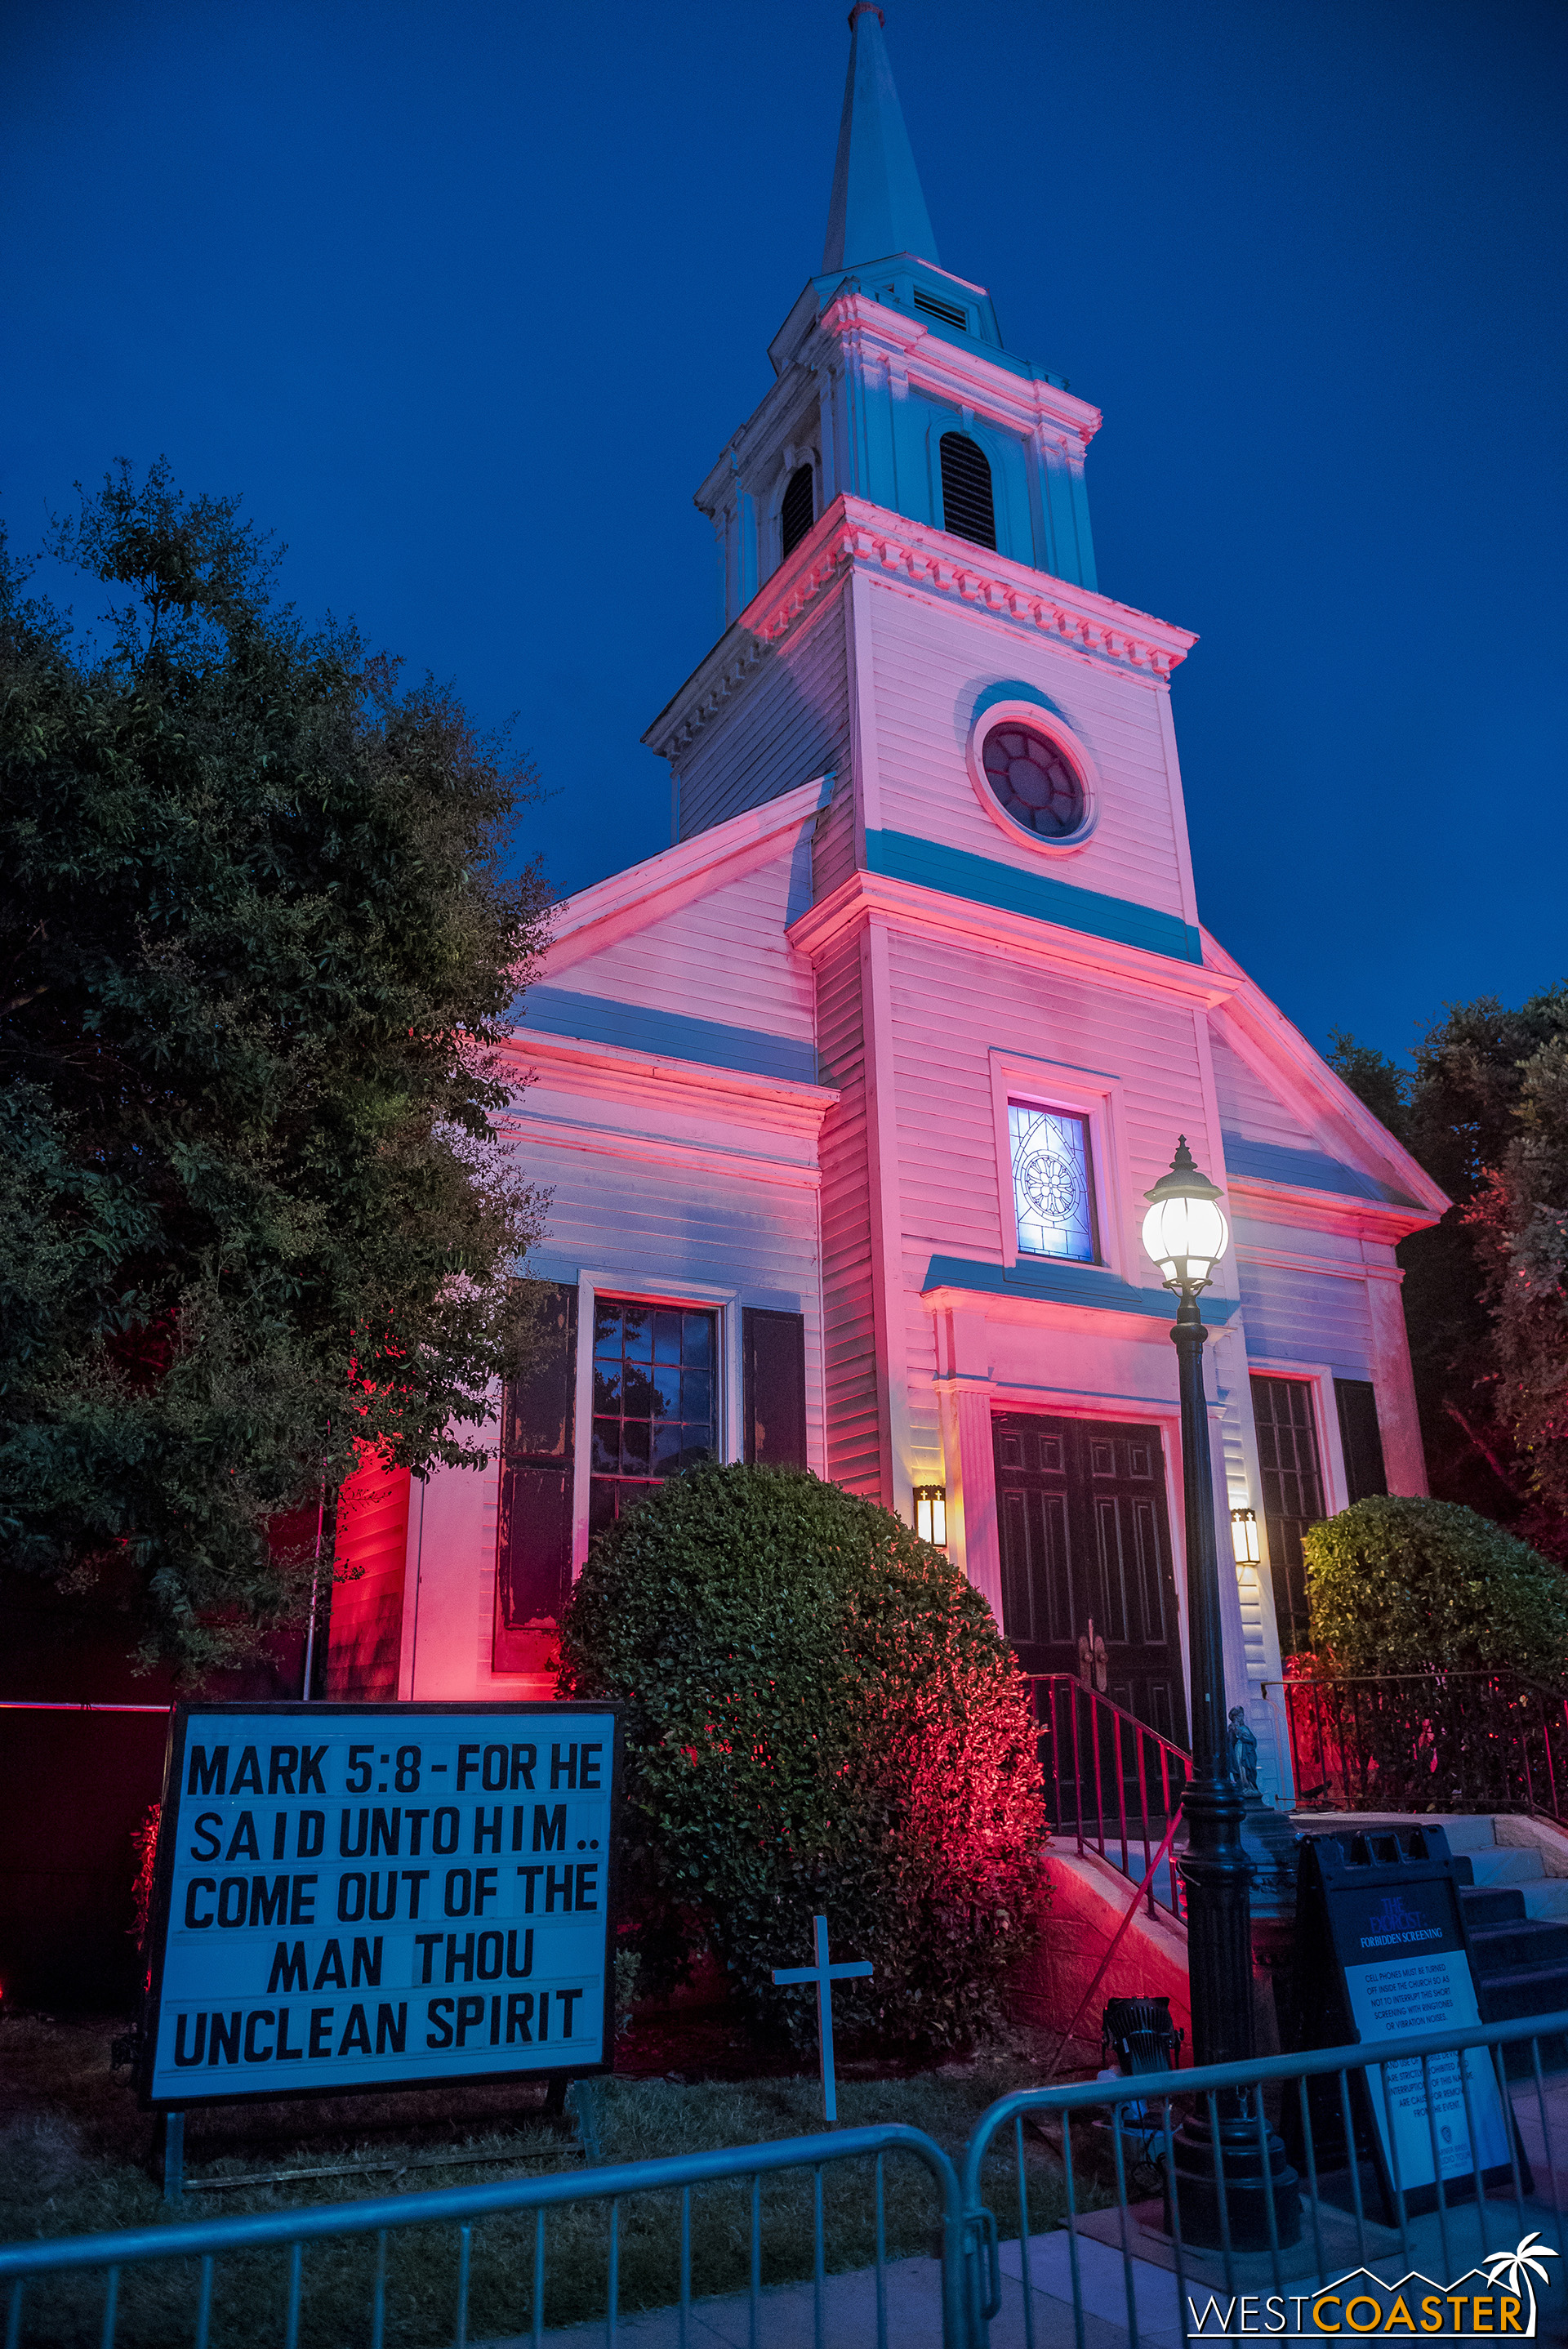 The church makes a fitting setting for this  Exorcist  attraction.